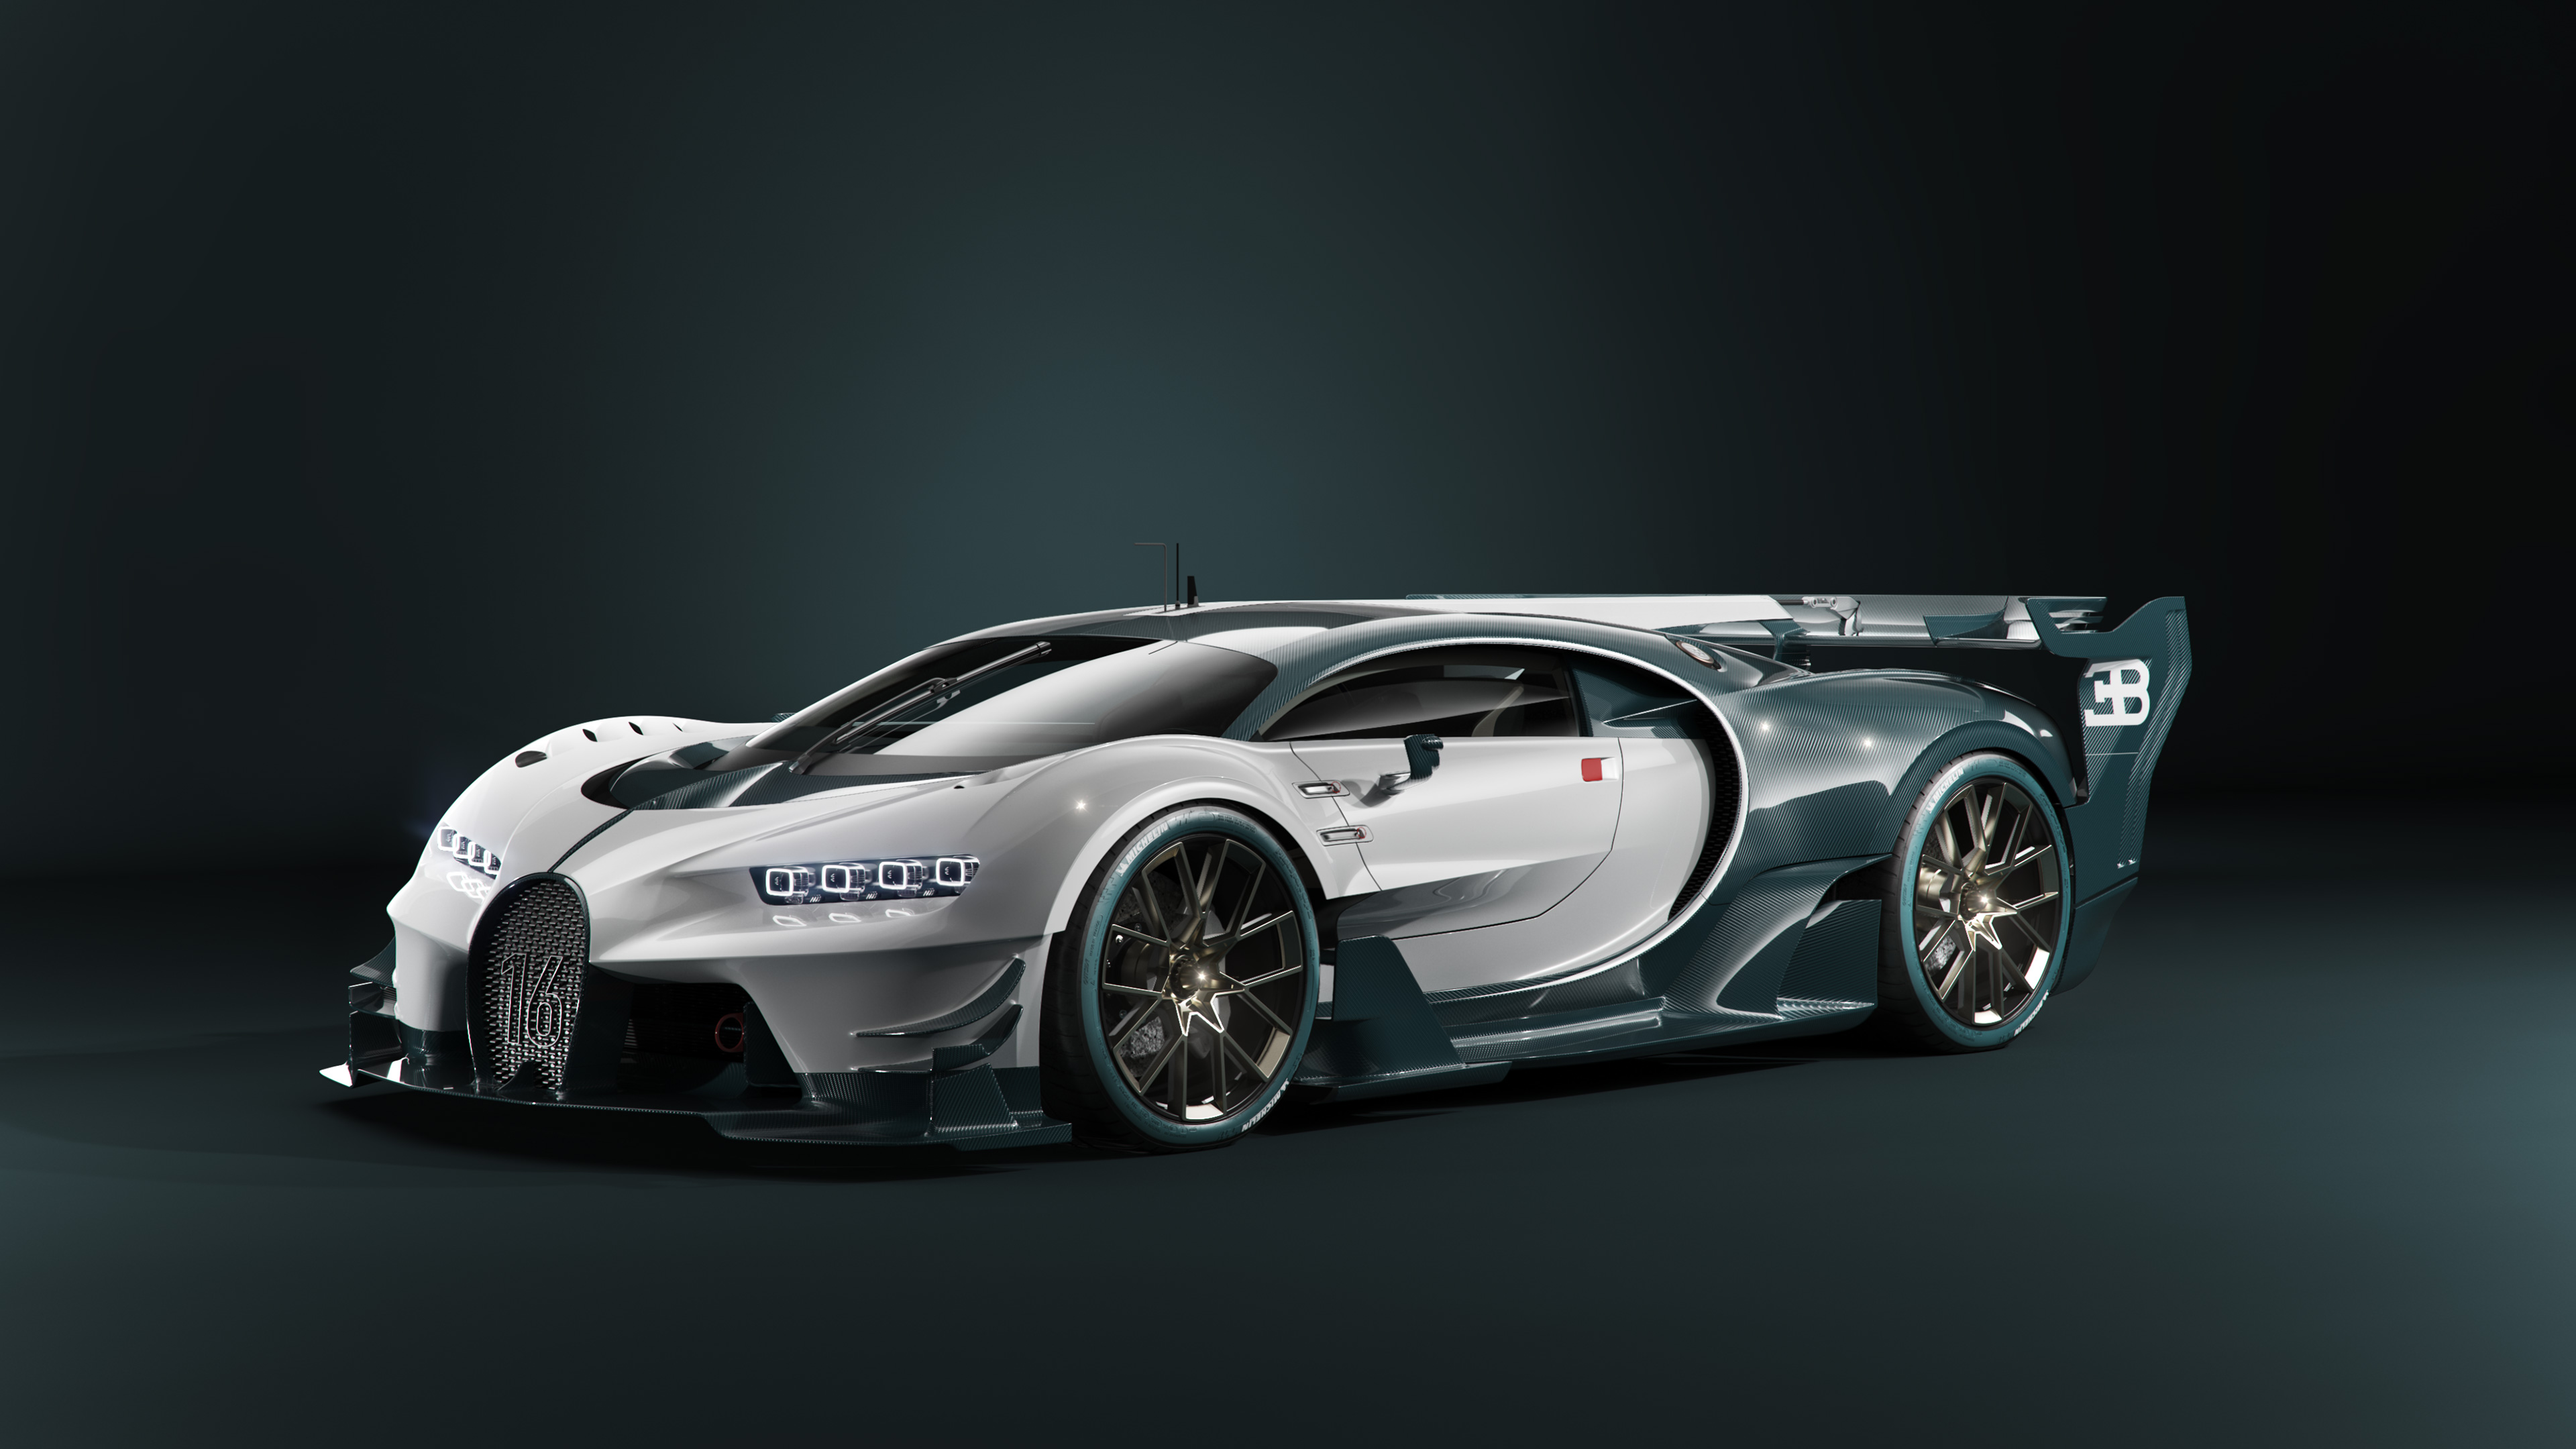 bugatti chiron gt 4k 1539113906 - Bugatti Chiron GT 4k - hd-wallpapers, bugatti wallpapers, bugatti chiron wallpapers, behance wallpapers, artist wallpapers, 4k-wallpapers, 2018 cars wallpapers